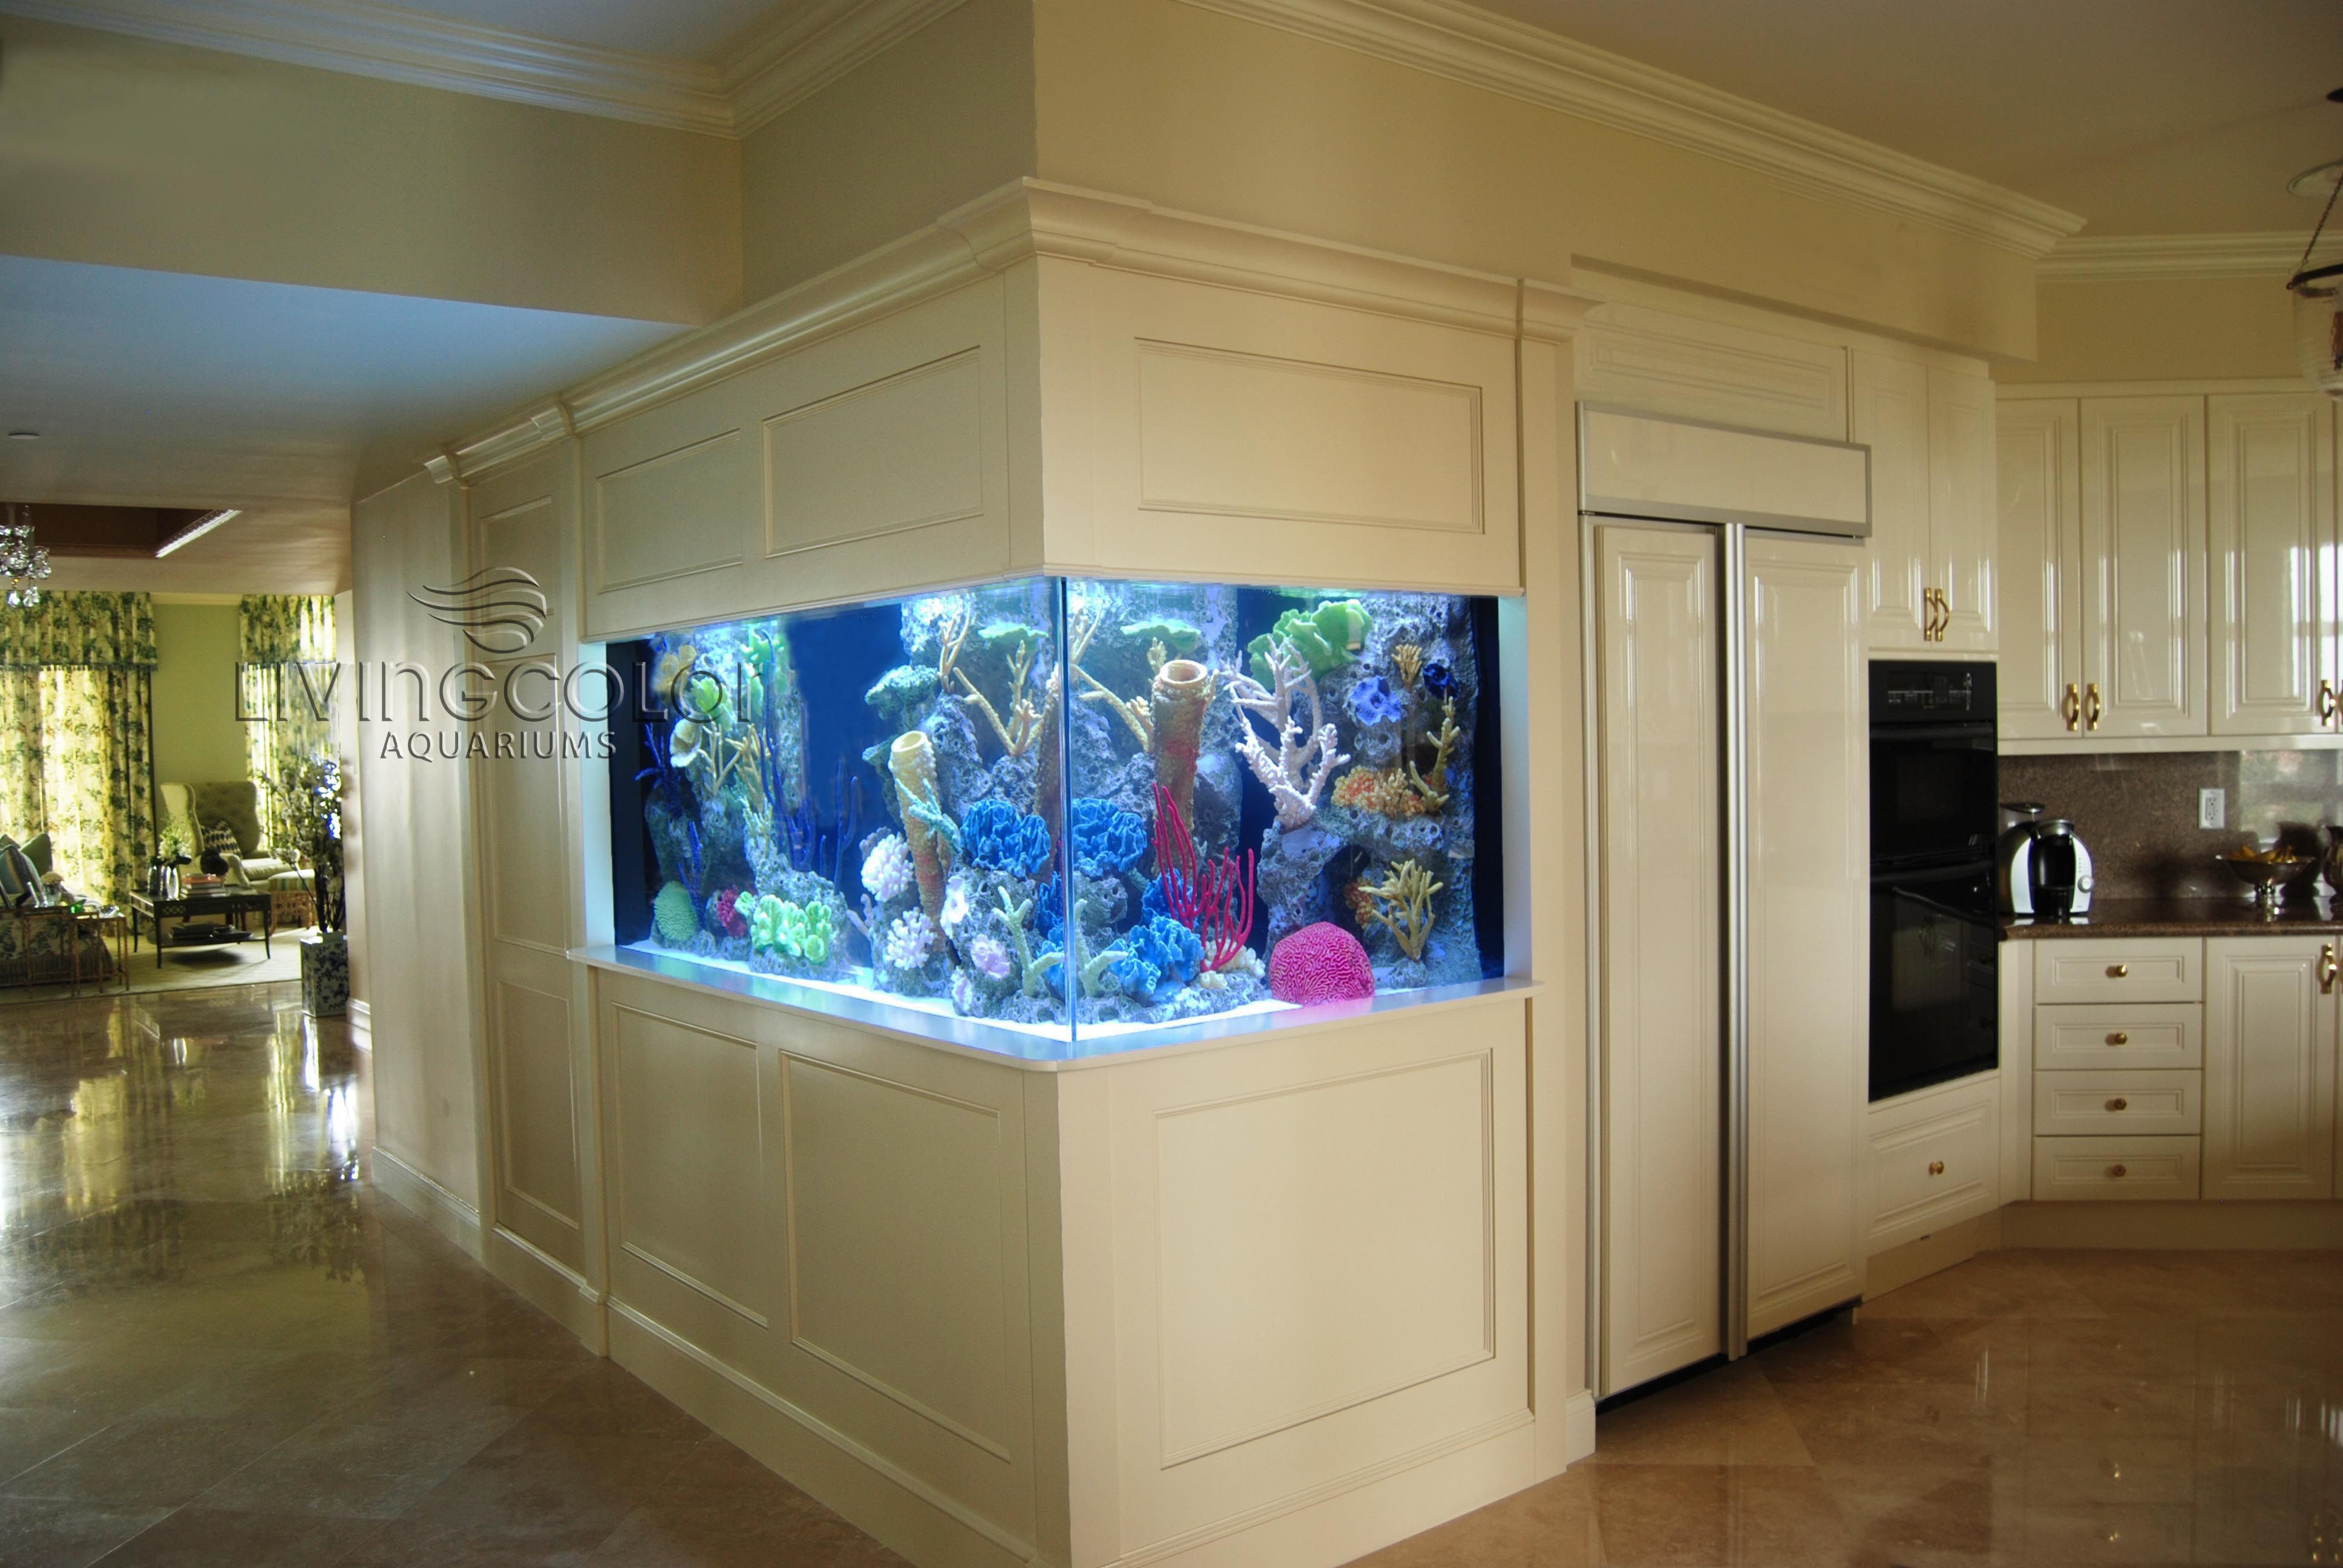 Now I would want a house big enough for this not for entertaining